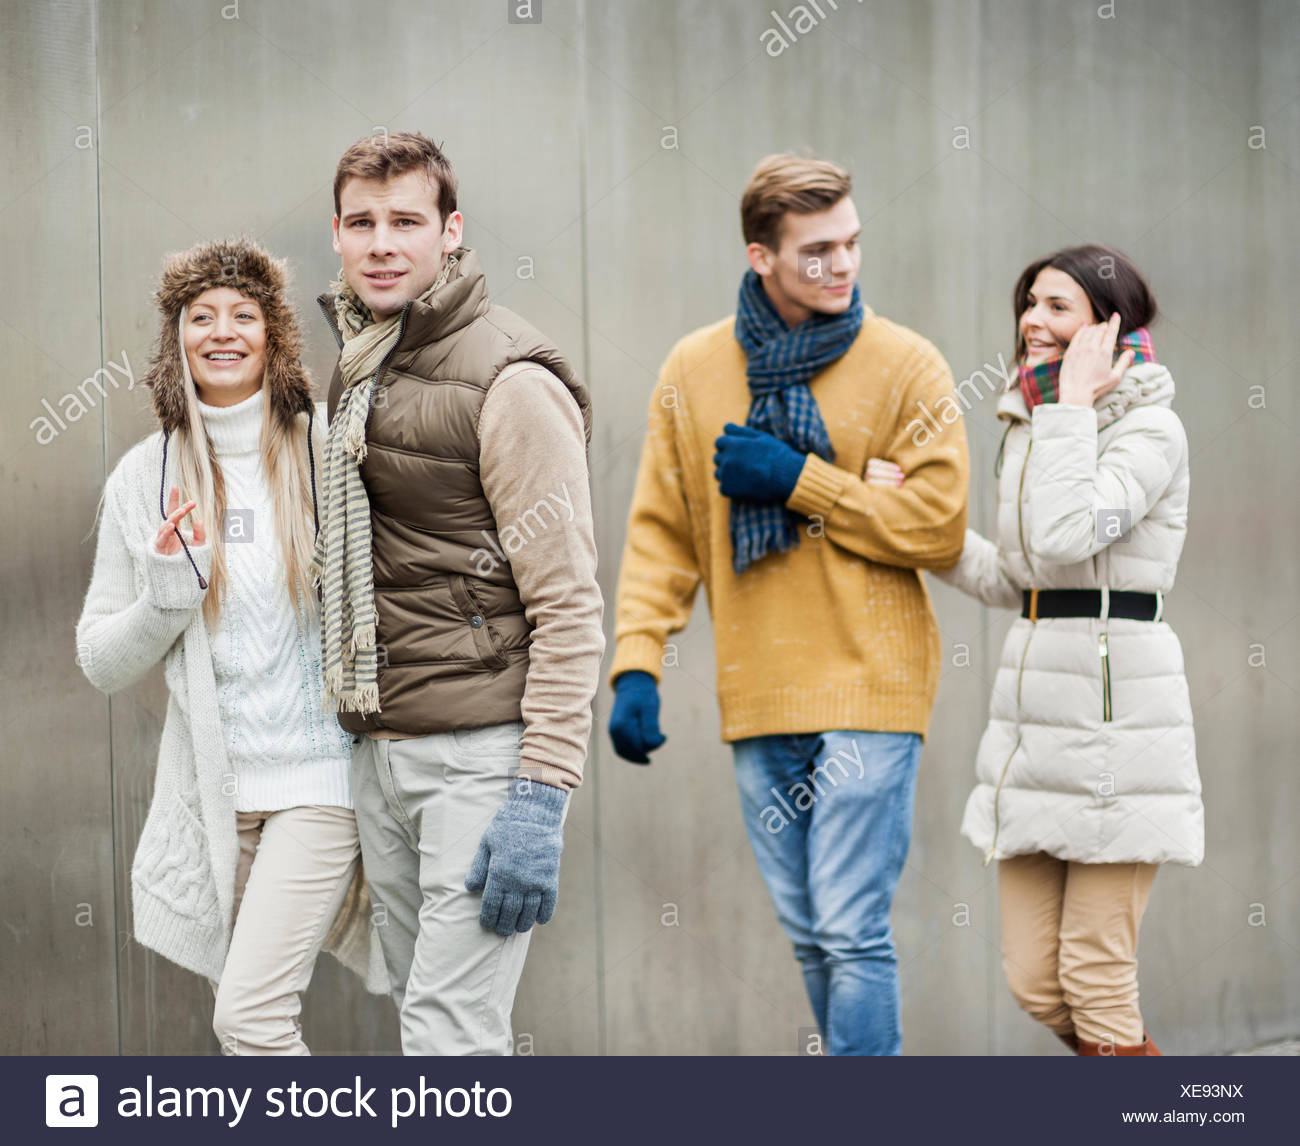 Smiling young couples walking against wall Photo Stock